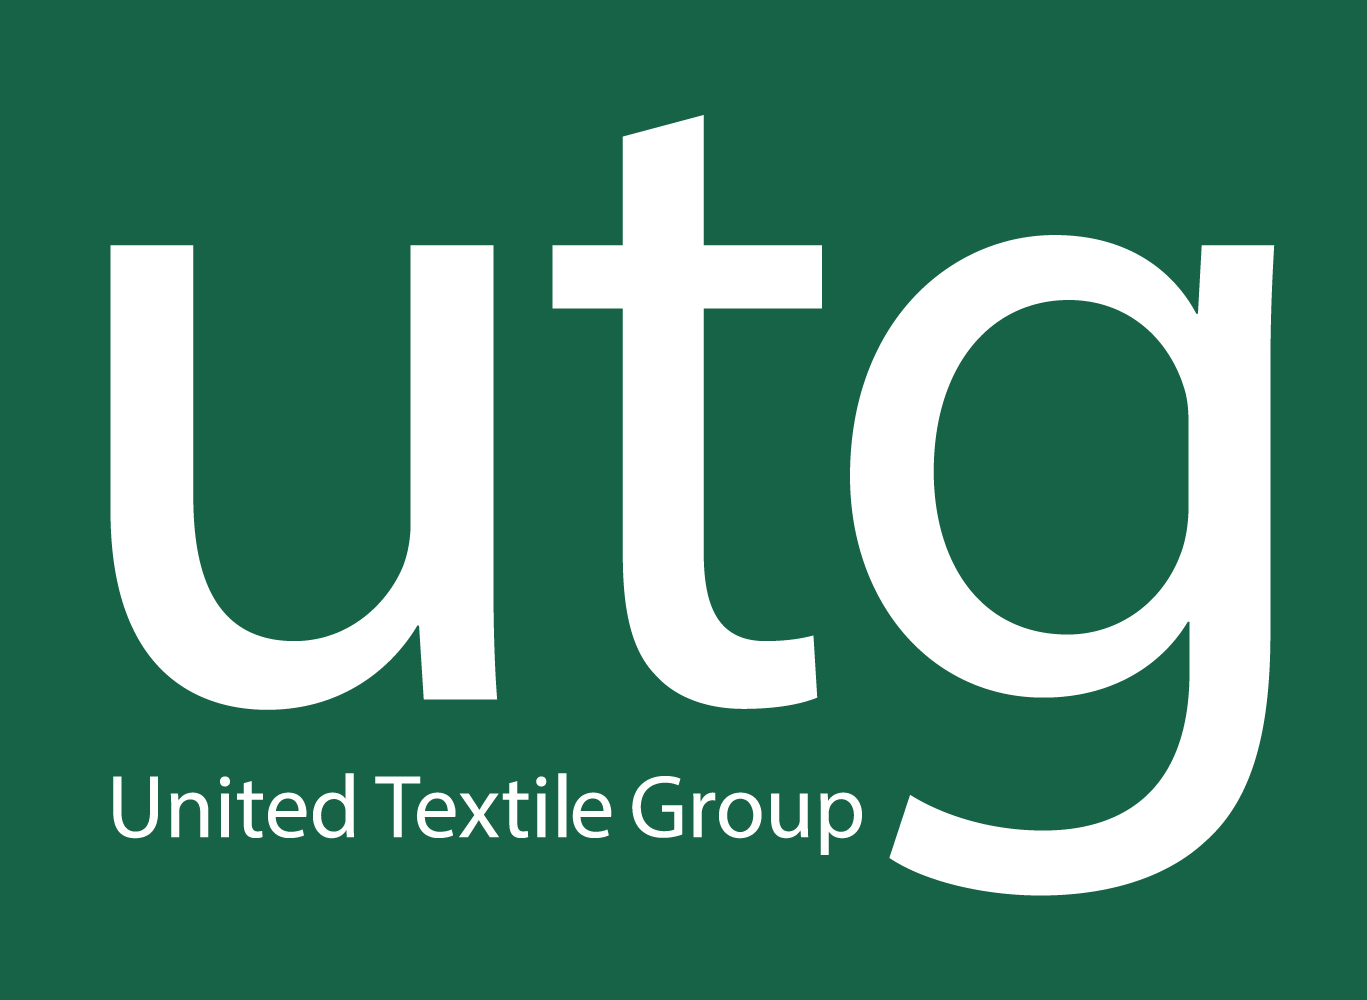 #unitedtextilegroup